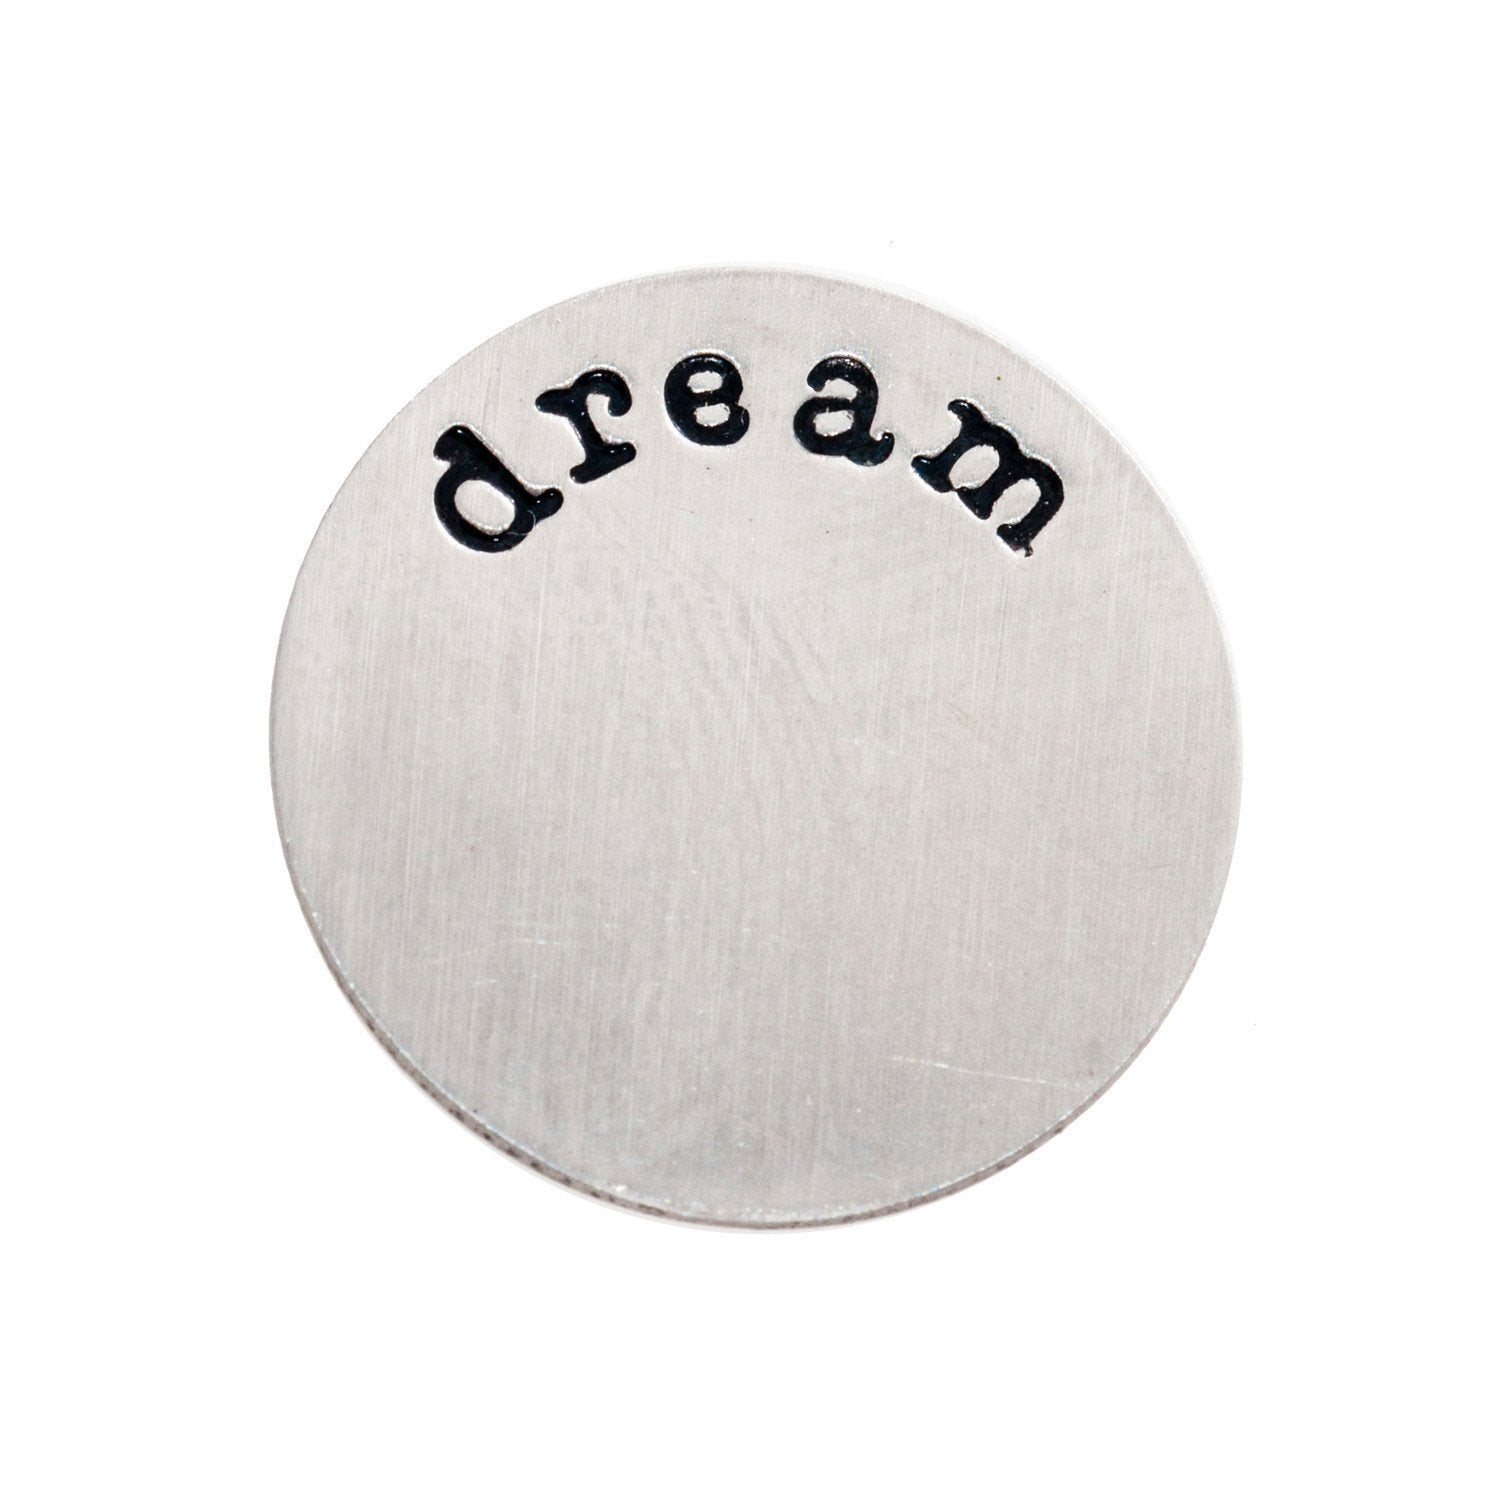 Back plate for use with large Memory Lockets - 'Dream'